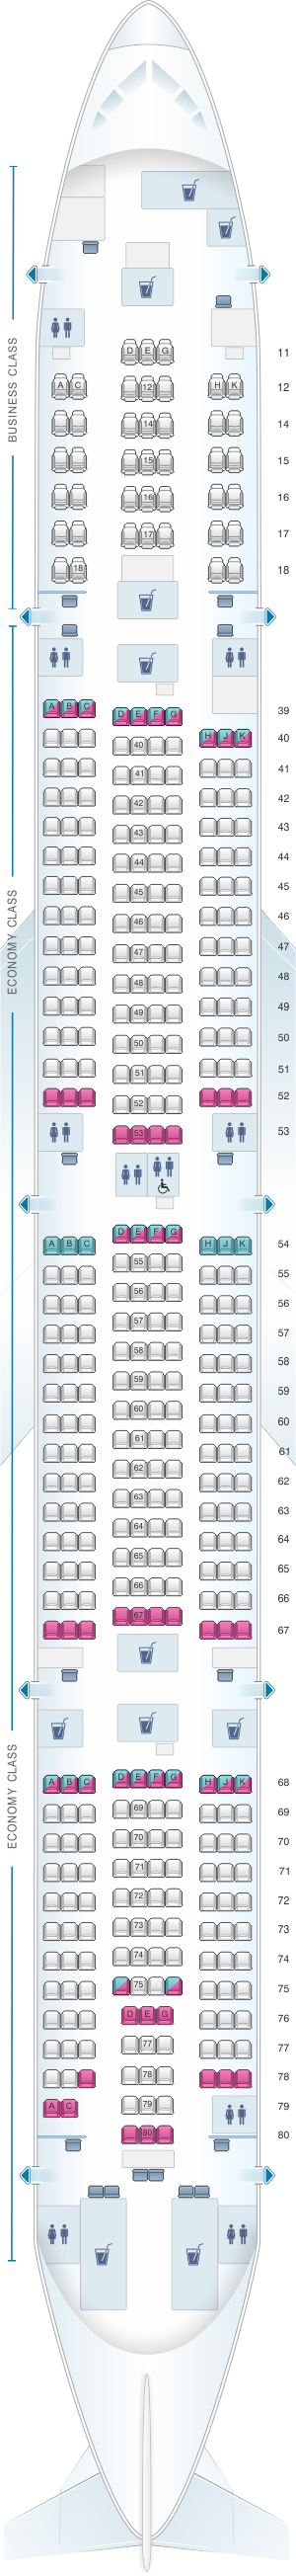 Seat map for Cathay Pacific Airways Boeing B777 300 (77P)